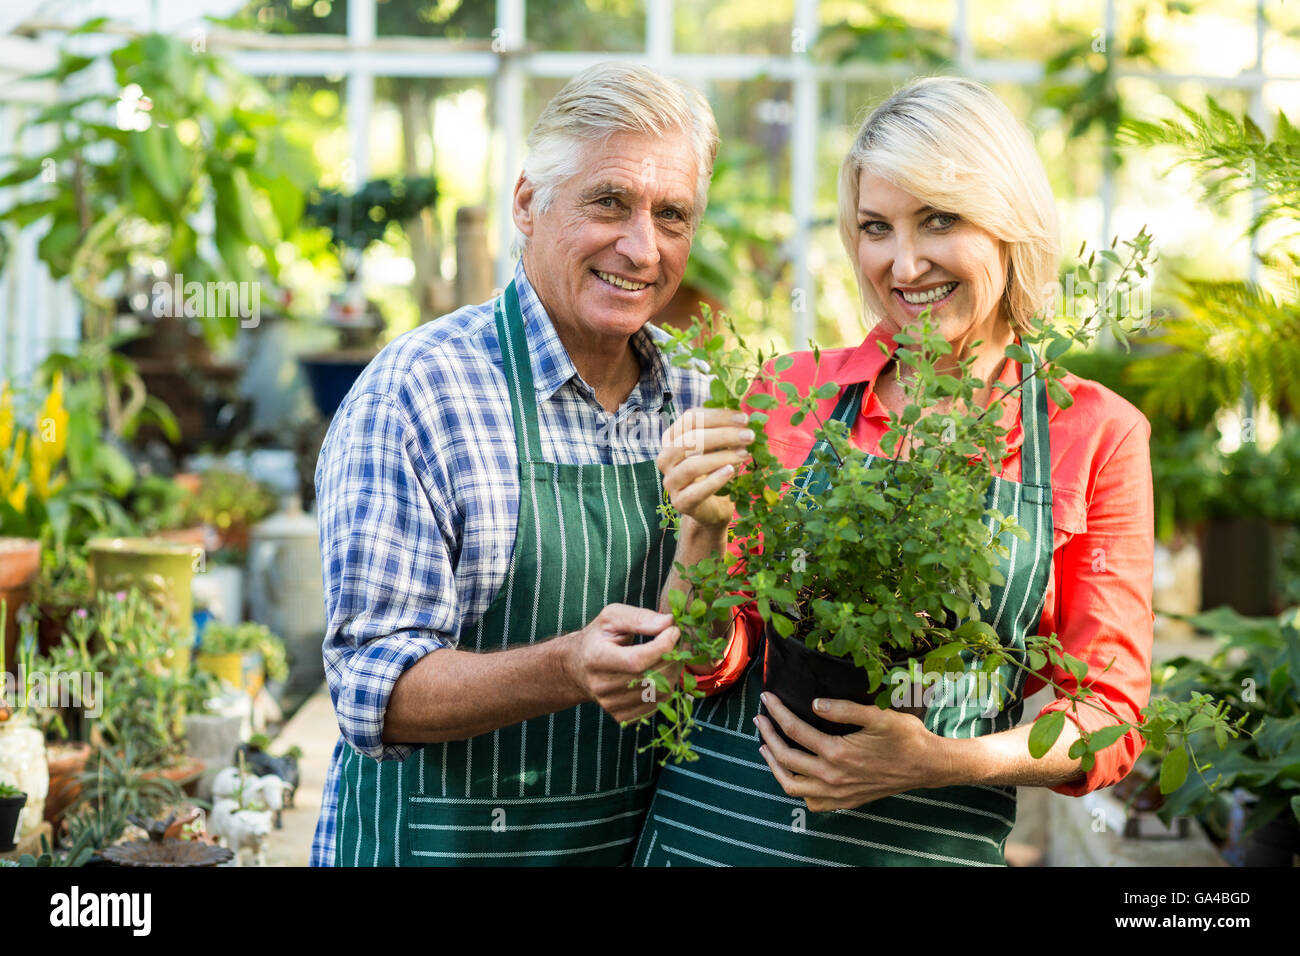 Happy couple holding potted plant in greenhouse - Stock Image